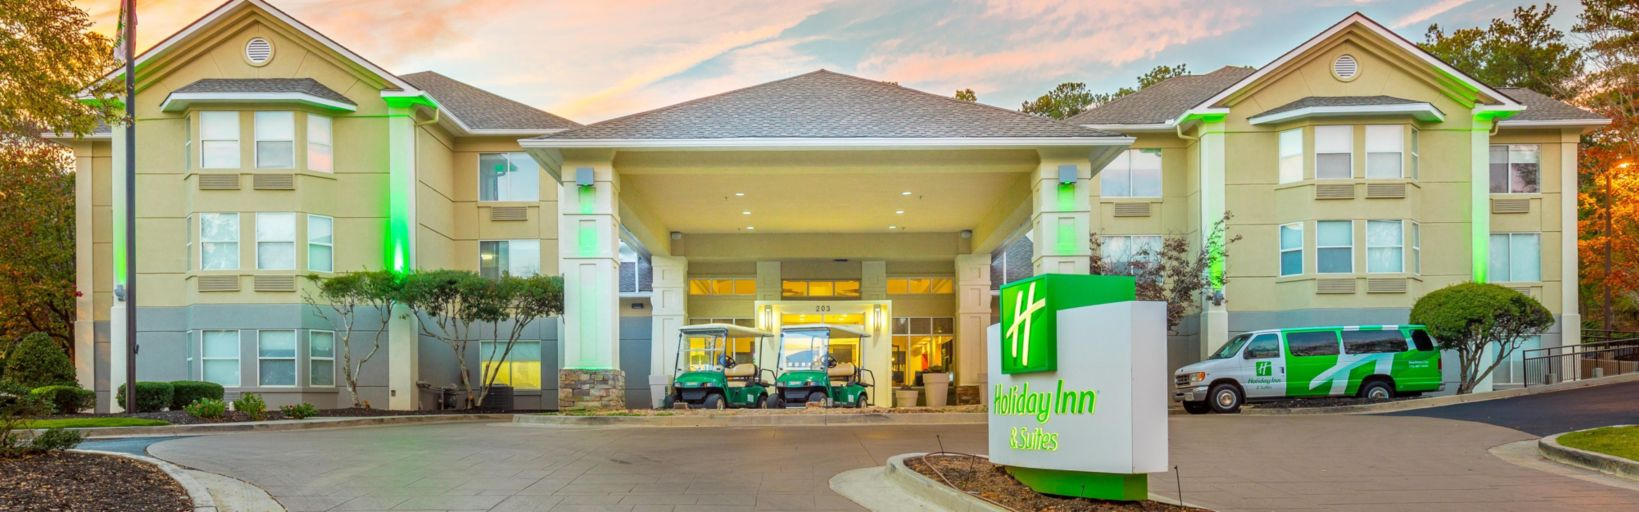 Welcome To The Holiday Inn Suites Peachtree City Ga